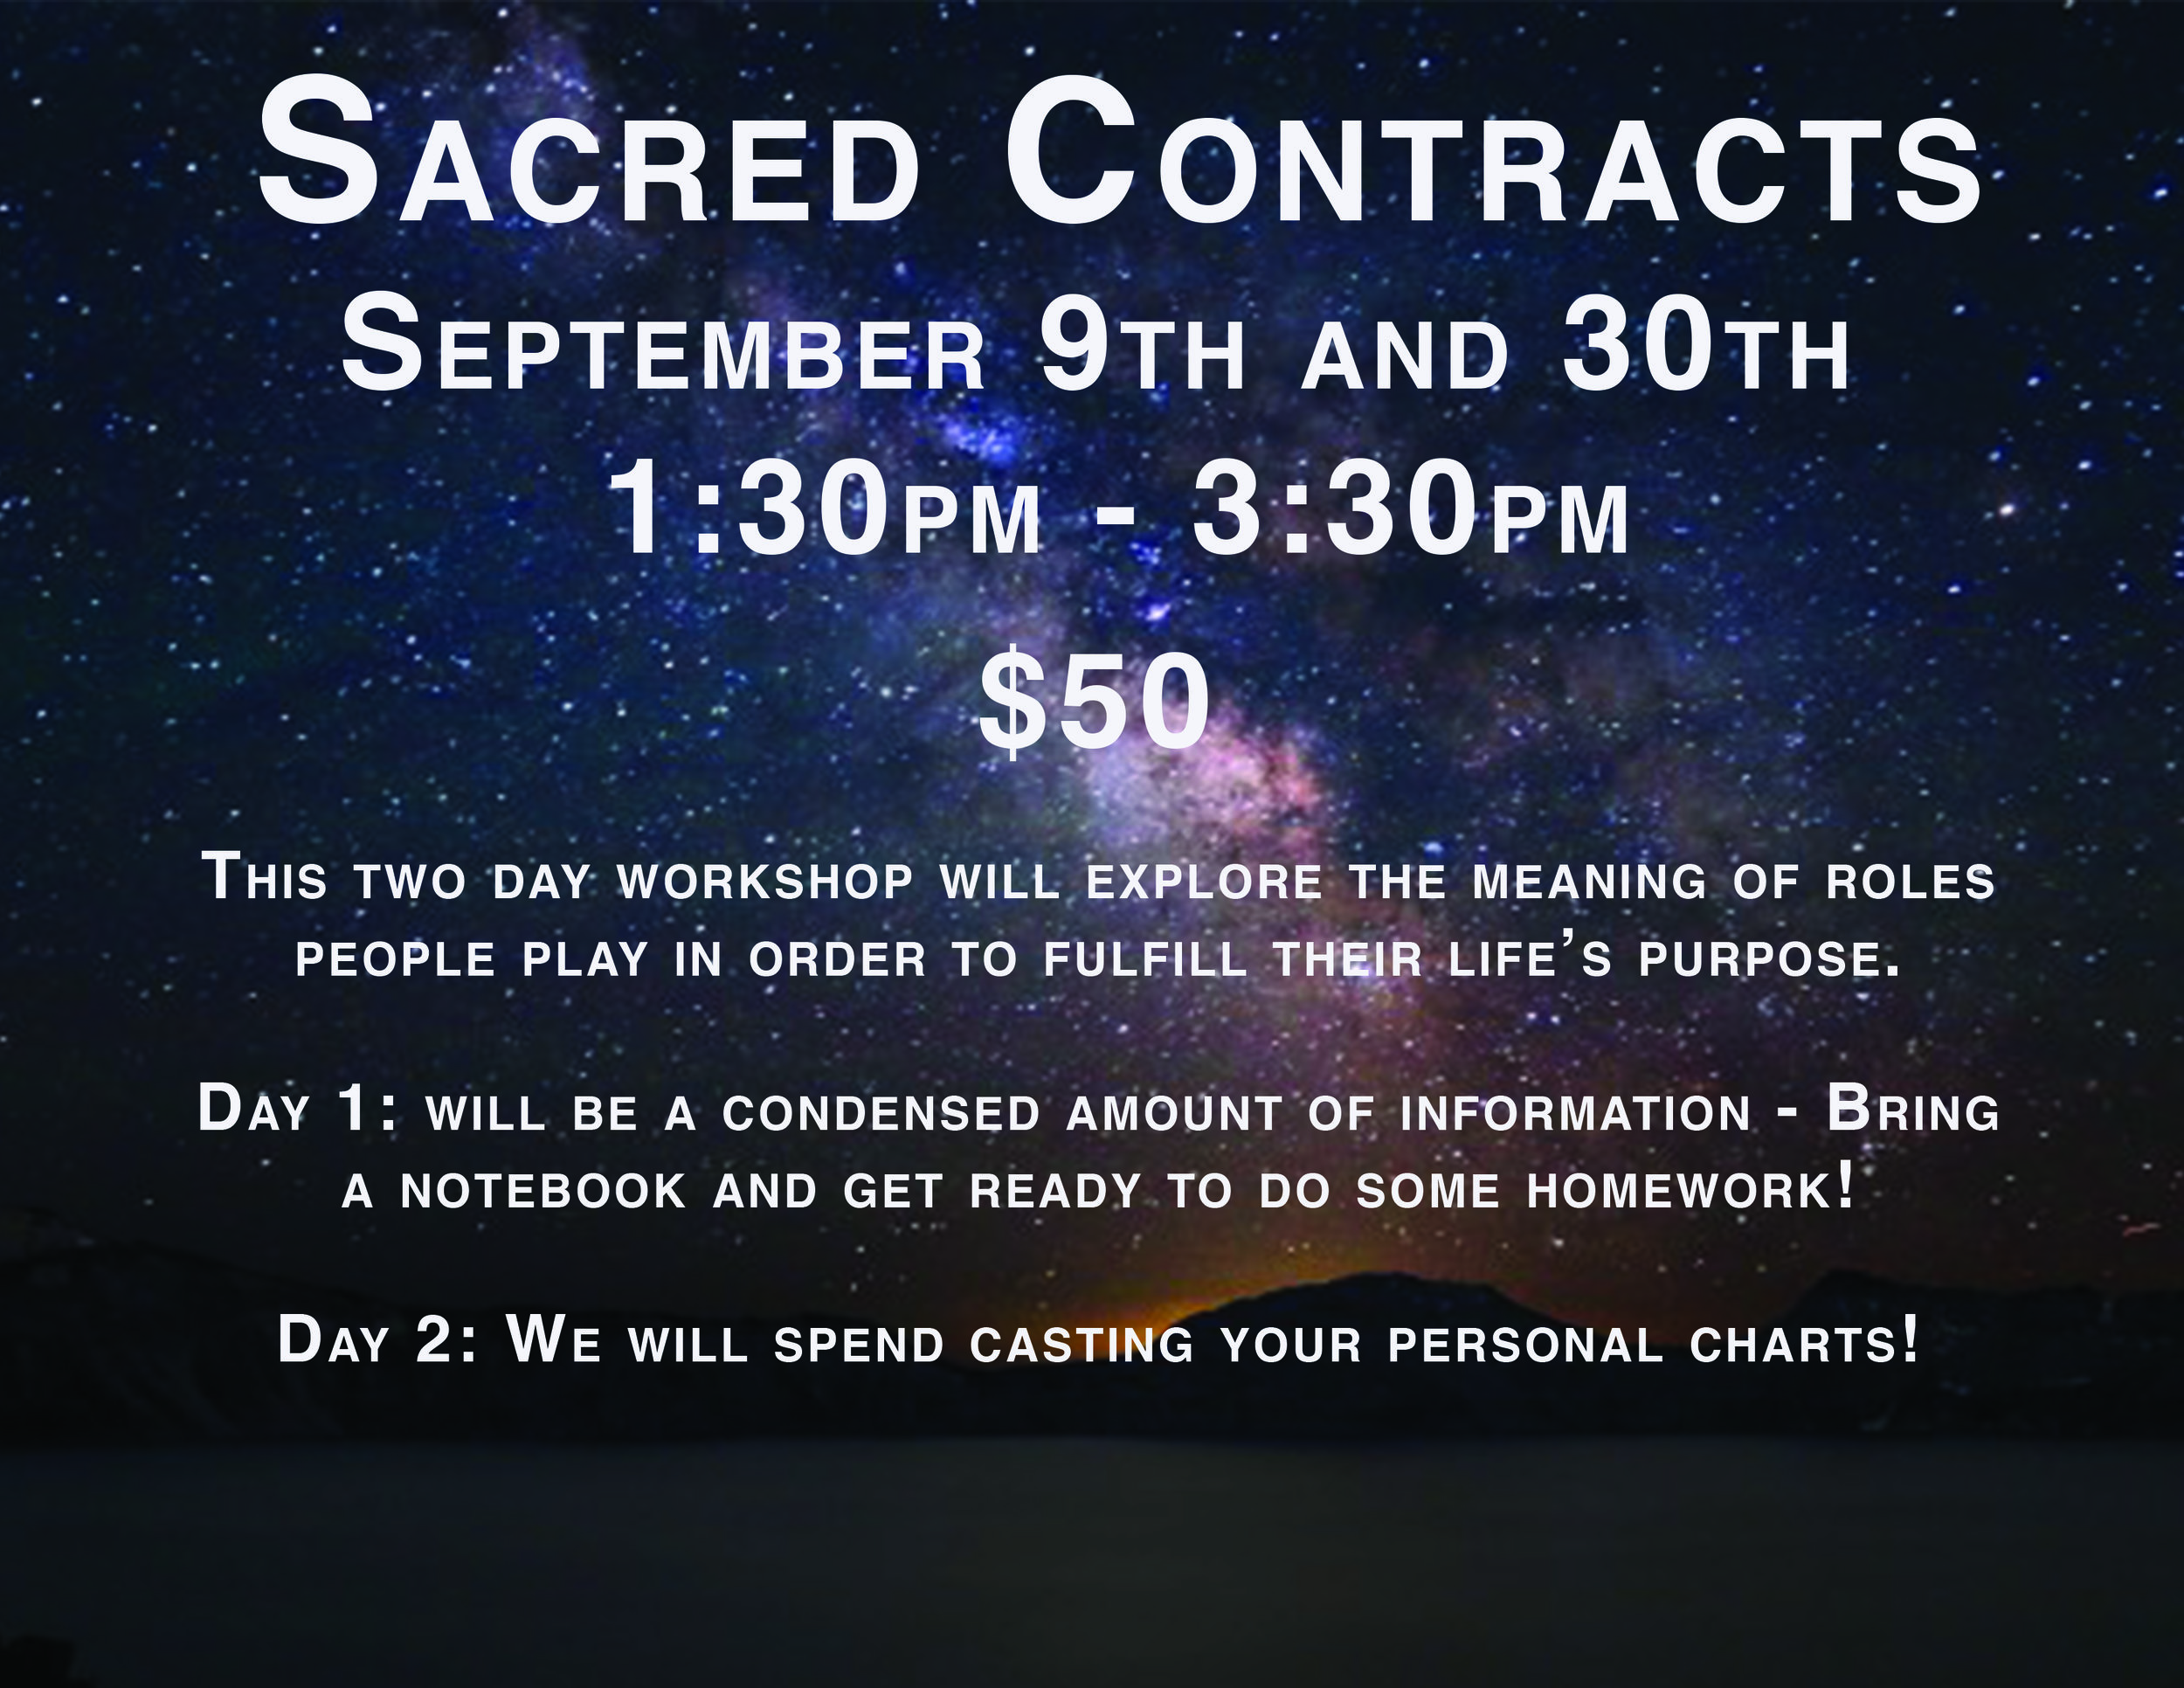 Sacred Contracts.jpg